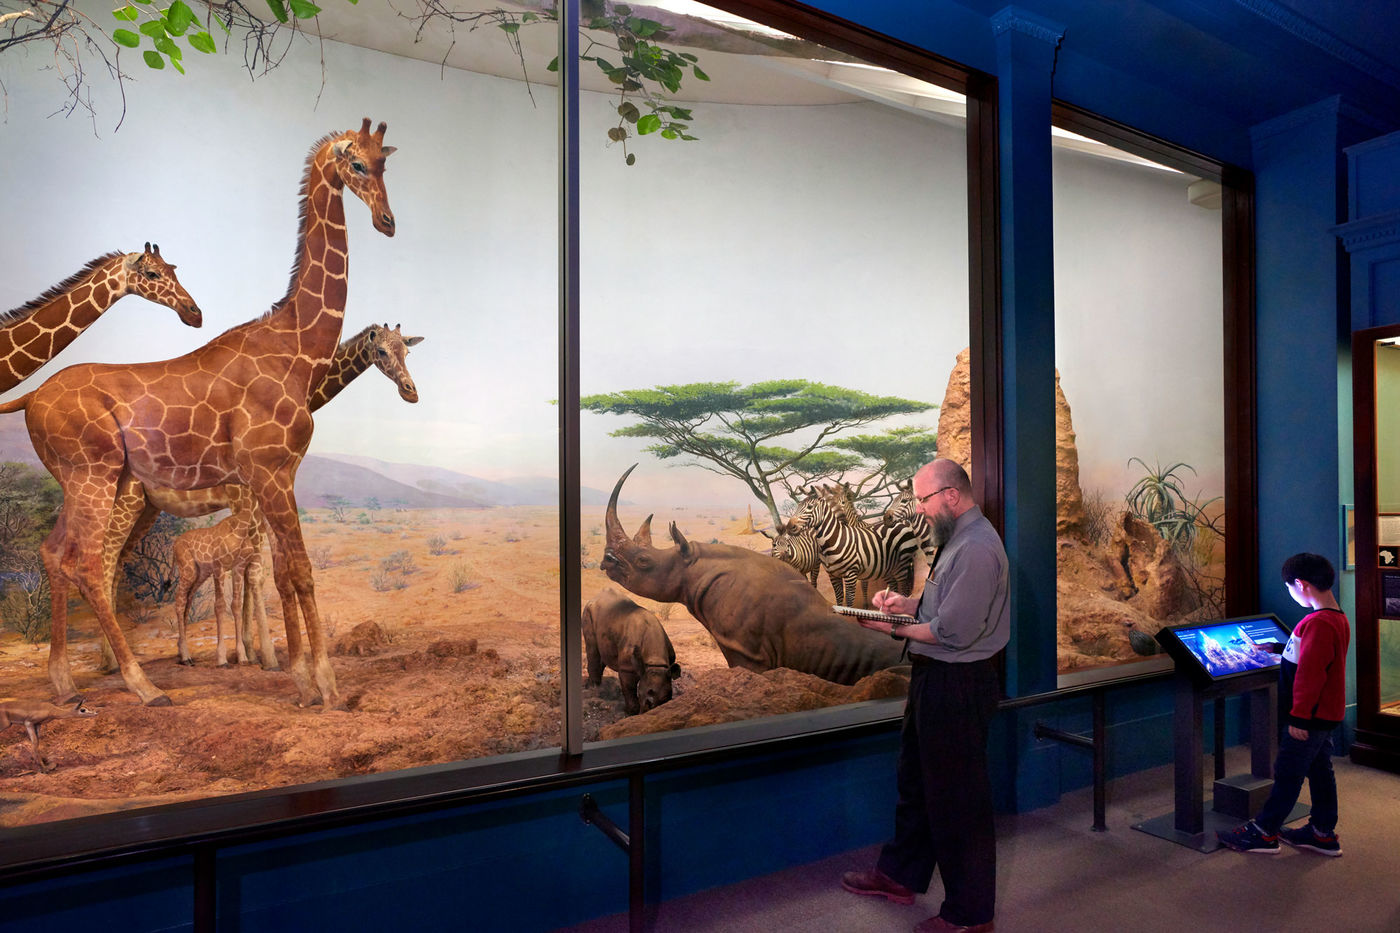 A man writes in a notebook as he stands in front of a large diorama with taxidermied giraffes, rhinos, and zebras in a savannah backdrop. To the right, a little boy interacts with a screen at a digital rail station.